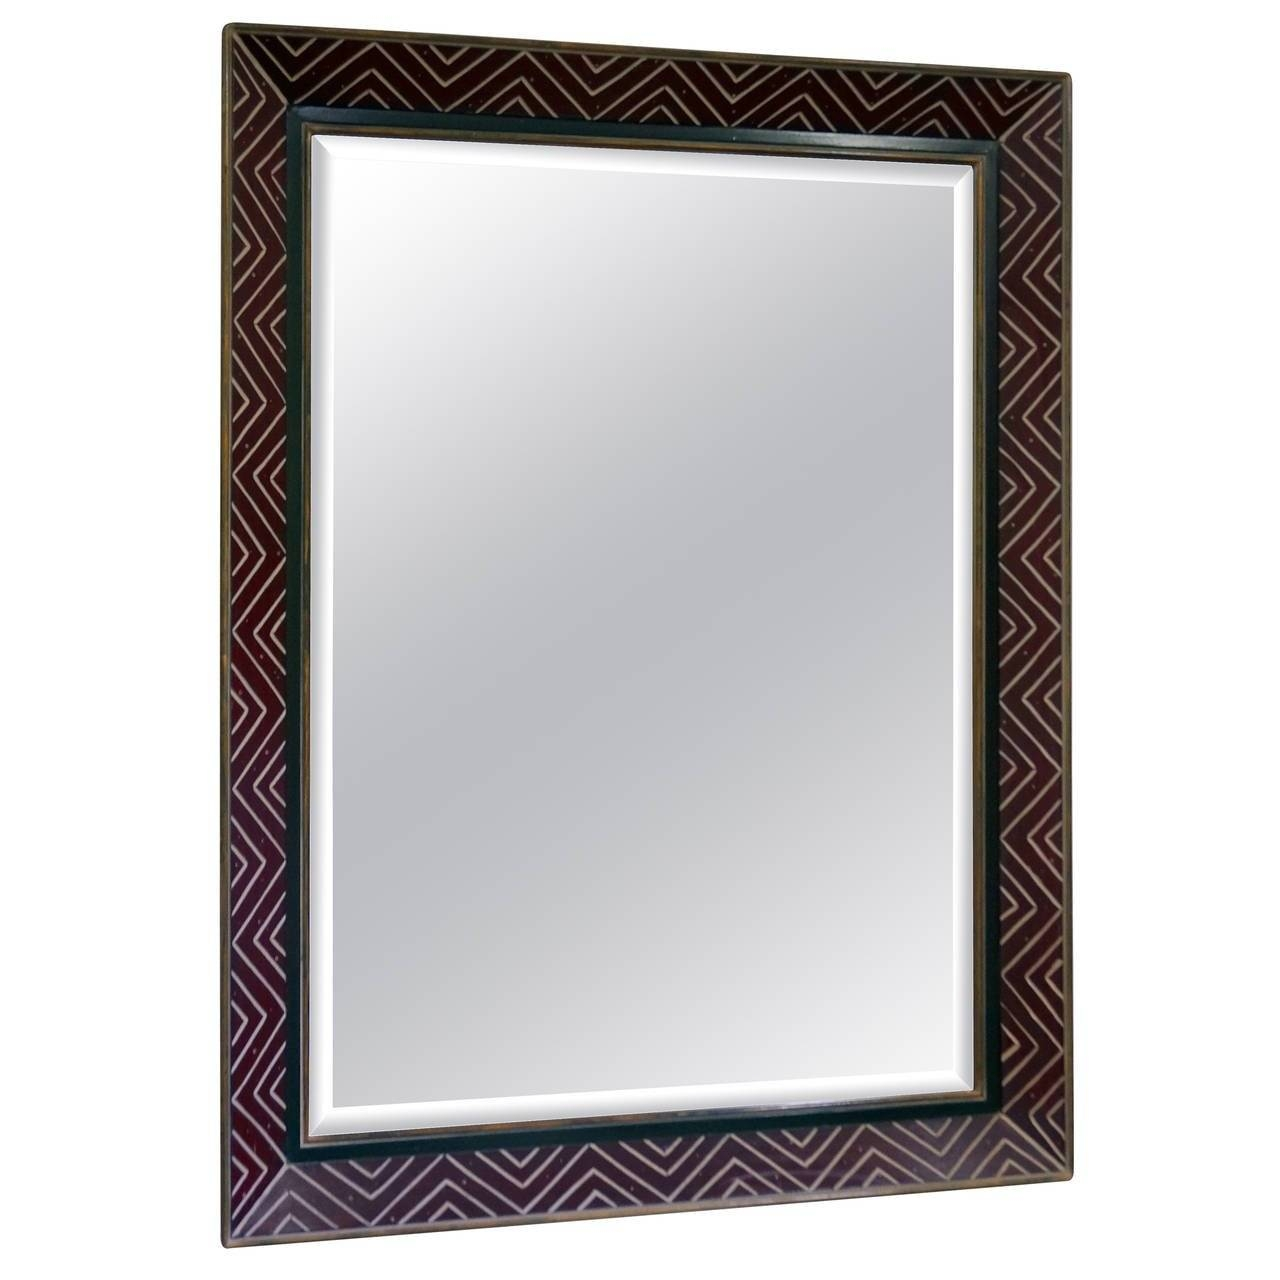 Art Deco Egyptian Revival Style Wall Mirror With Incised Chevron inside Art Deco Wall Mirrors (Image 4 of 25)